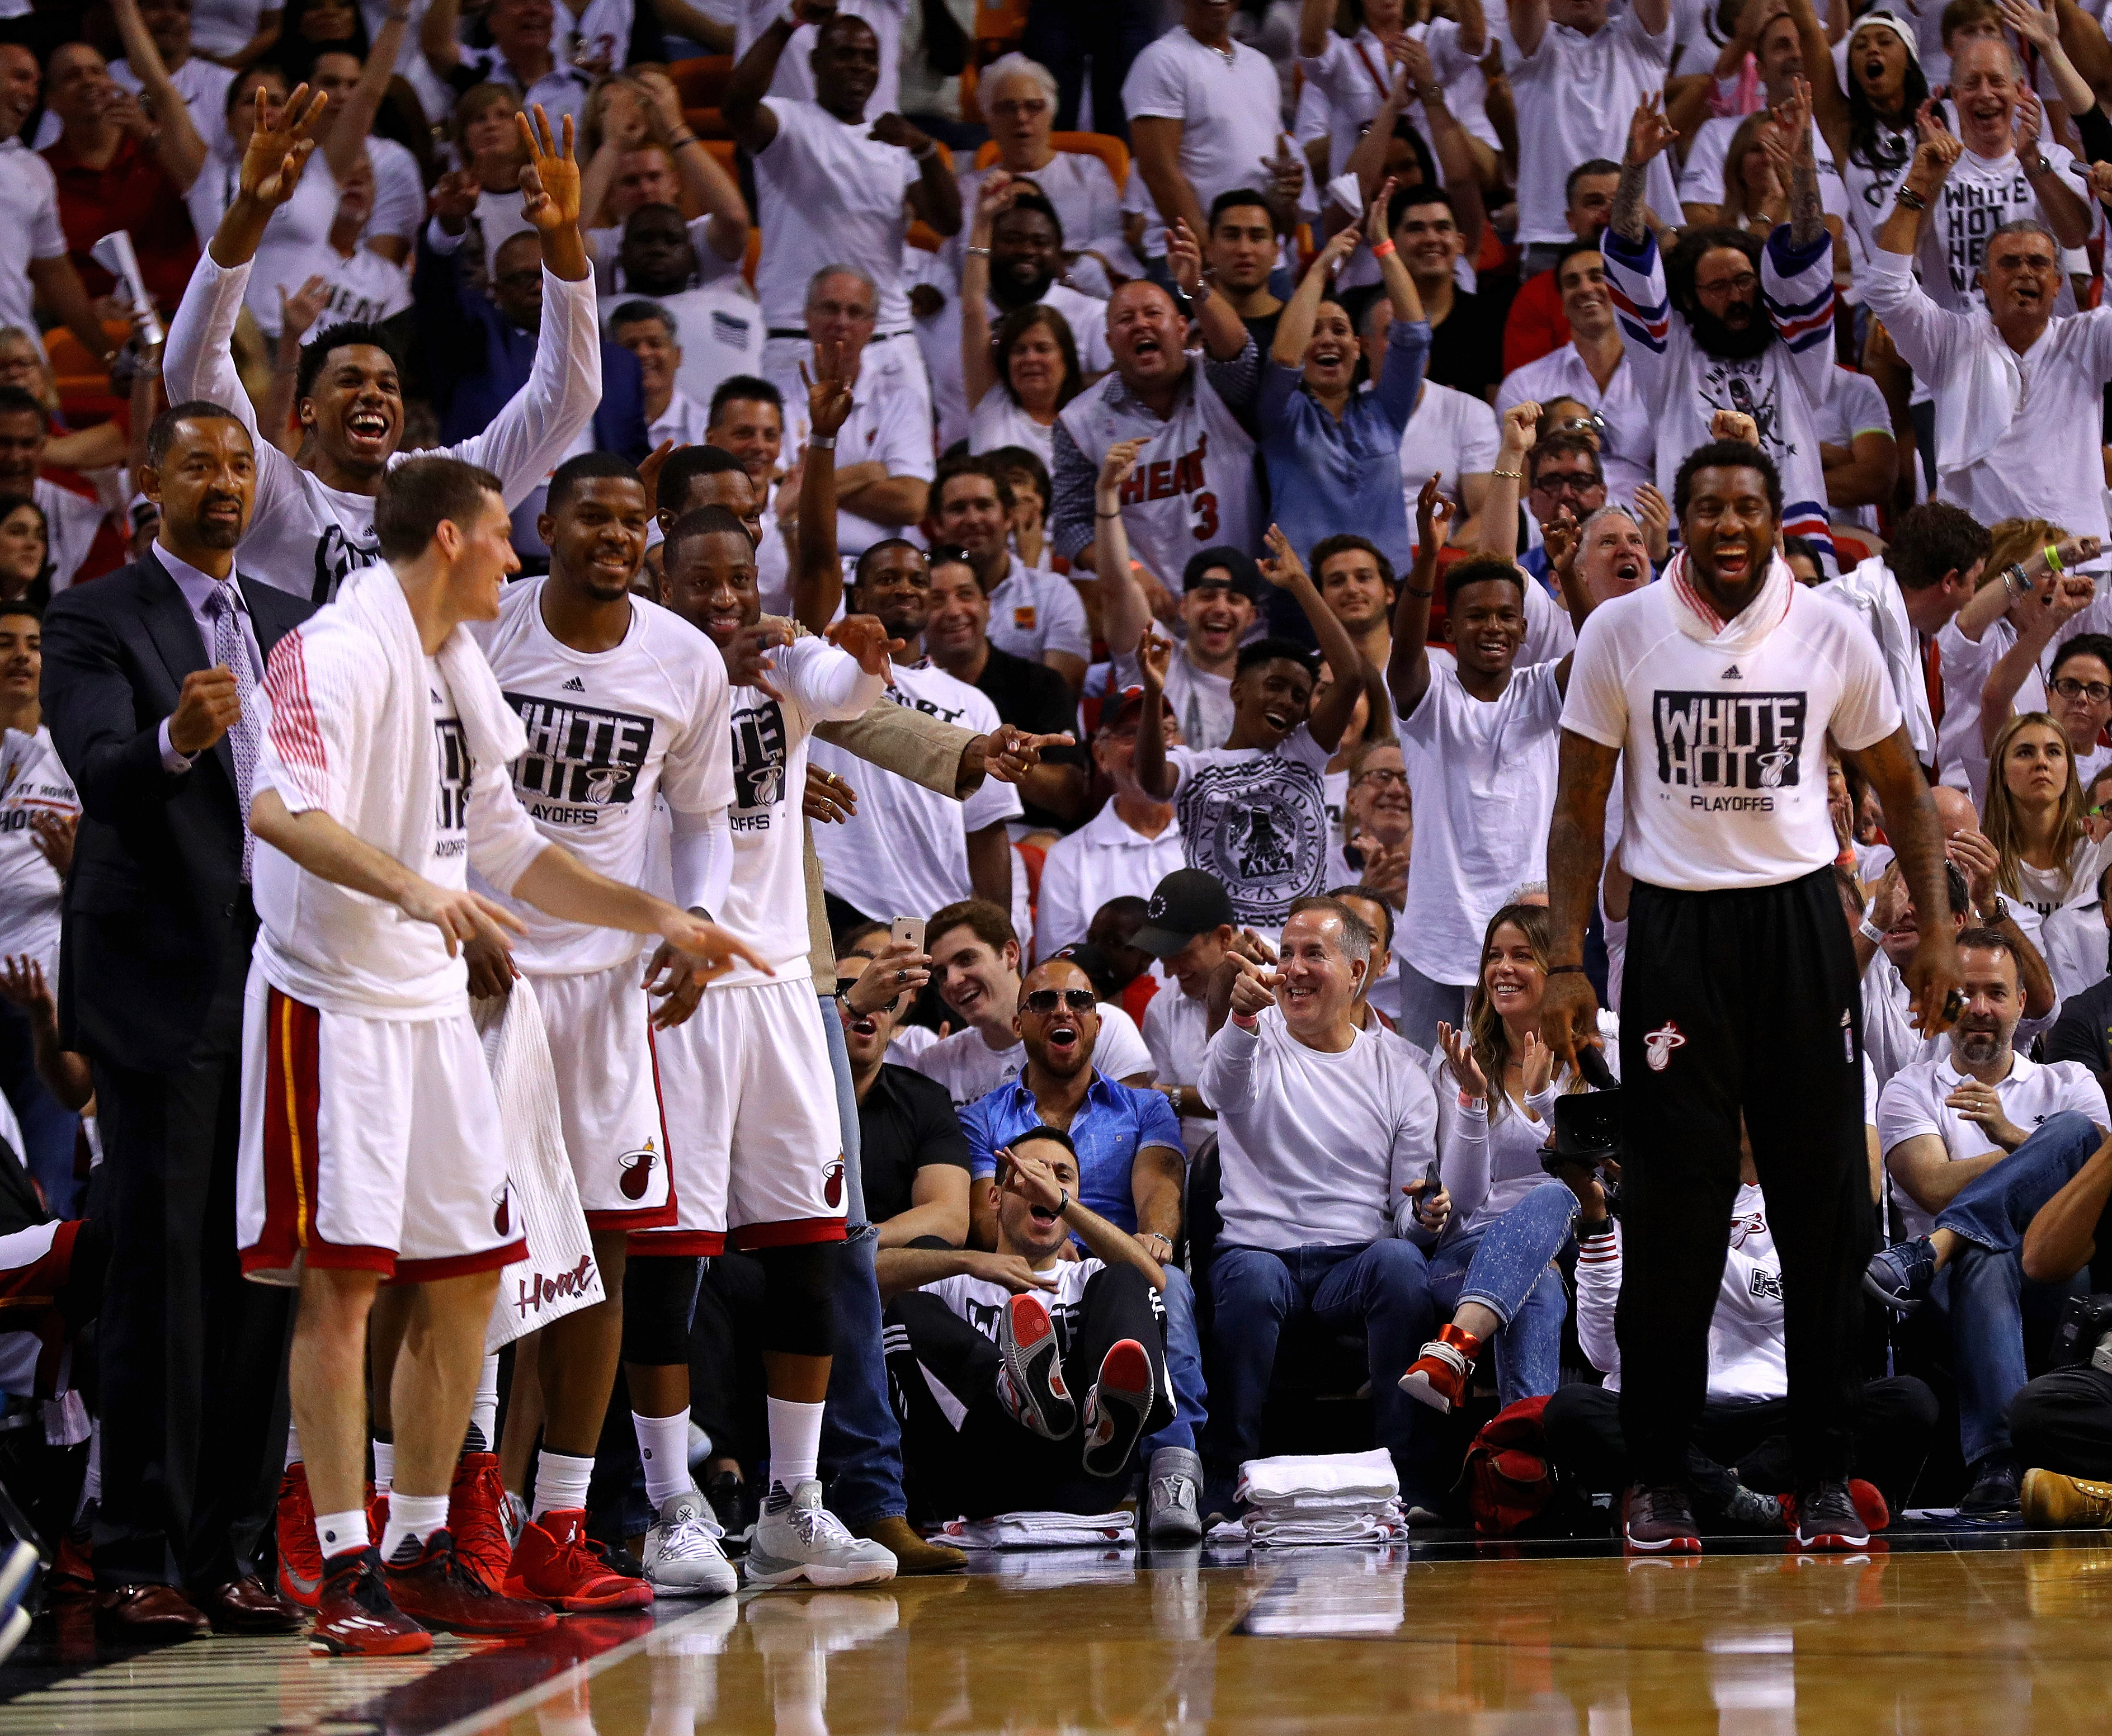 MIAMI, FL - MAY 01: Members of the Miami Heat celebrate during Game Seven of the Eastern Conference Quarterfinals of the 2016 NBA Playoffs at American Airlines Arena on May 1, 2016 in Miami, Florida. (Photo by Mike Ehrmann/Getty Images)